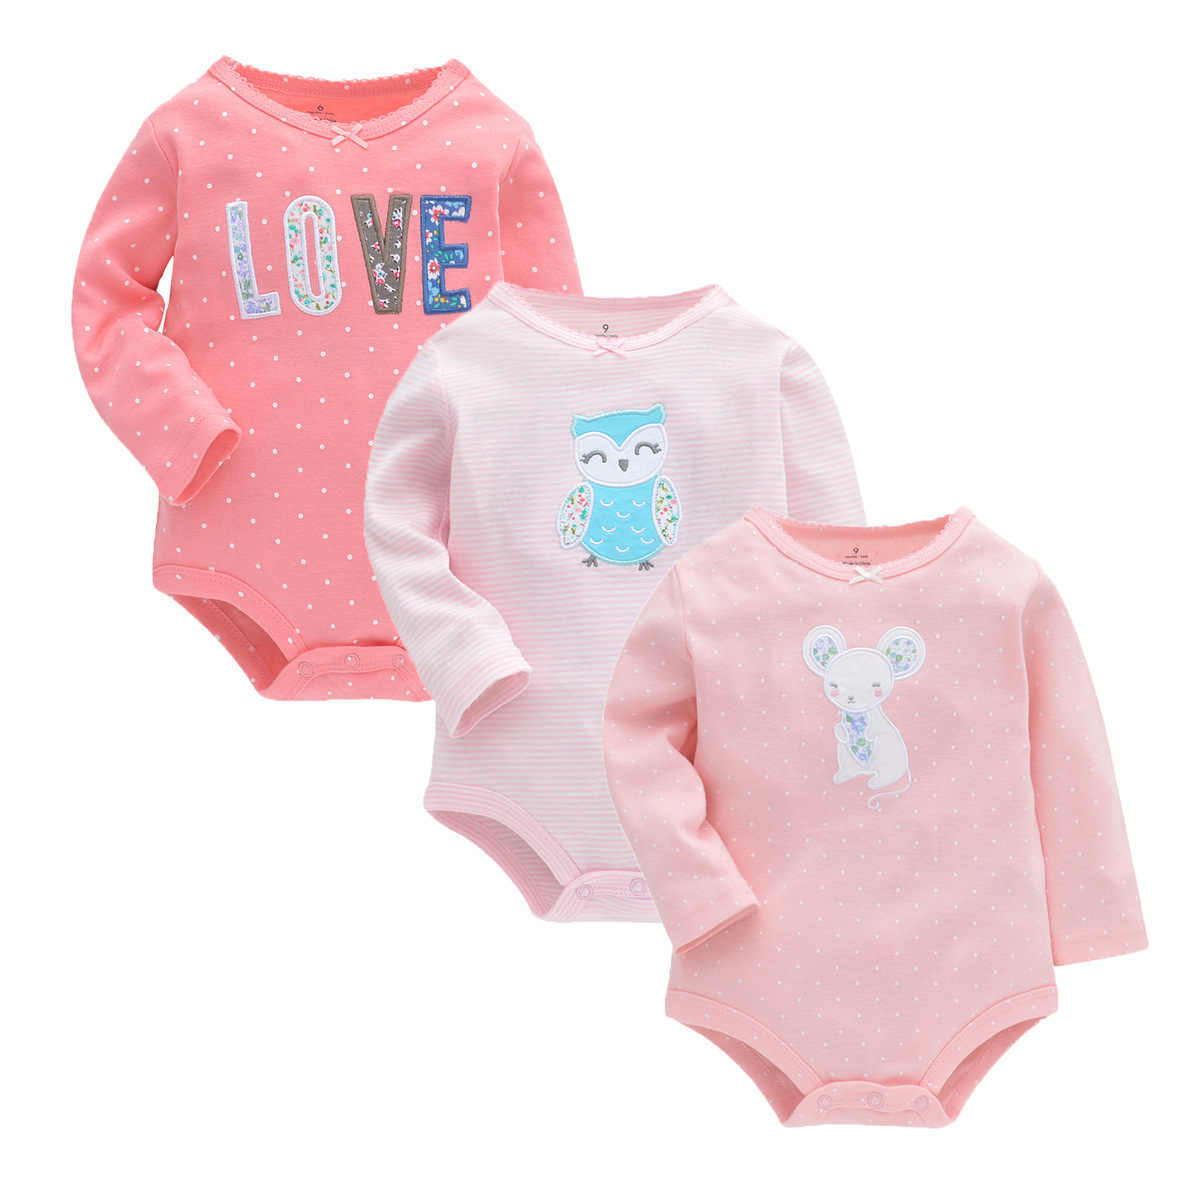 Newborn Infant Outfits Summer Baby Girl Rompers Spring Princess Newborn Baby Clothes For 2y Girls Boys Long Sleeve Jumpsuit Kids Baby Outfits Clothes